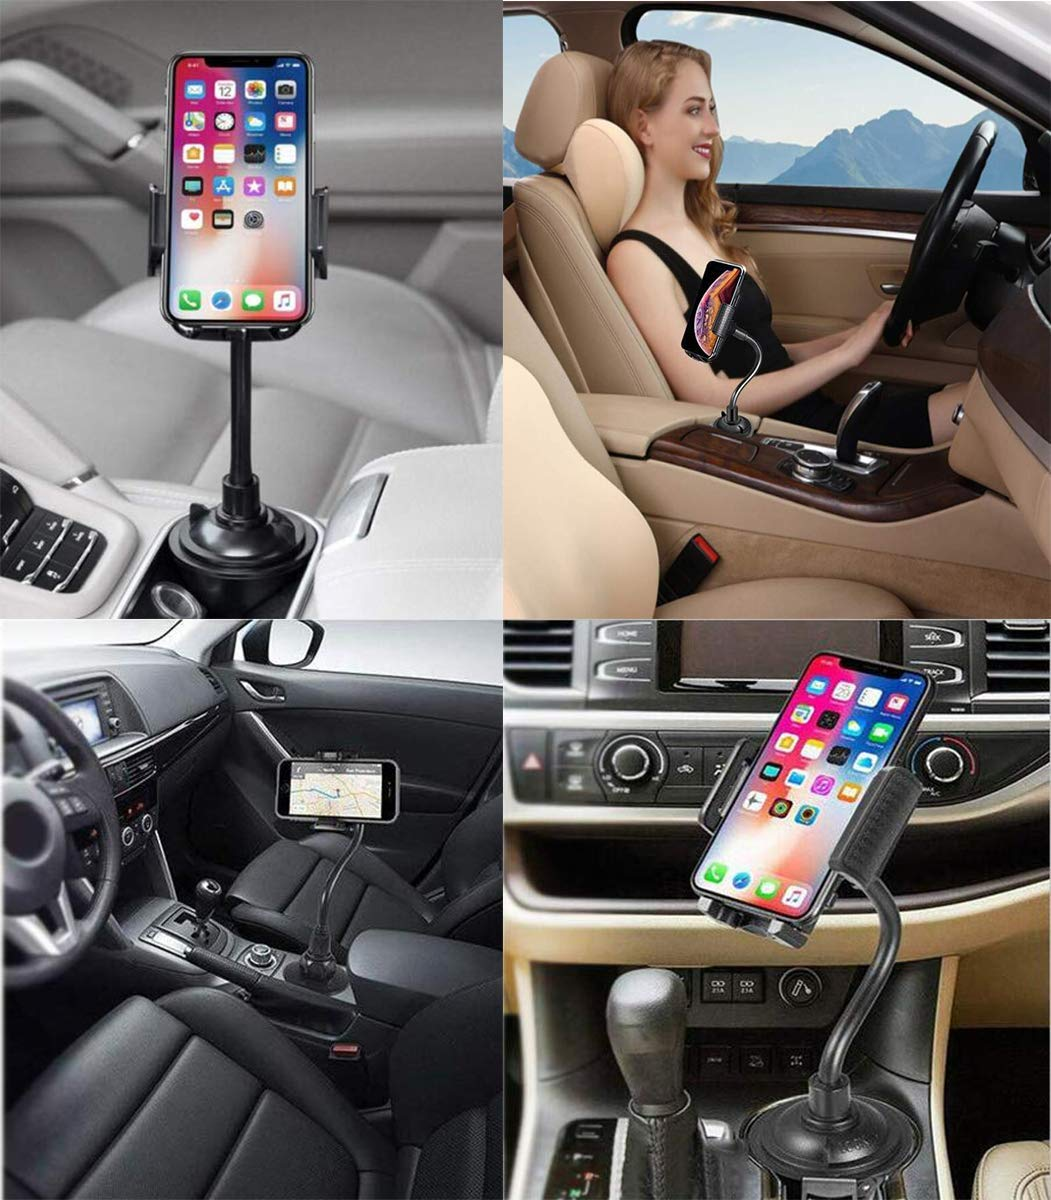 Universal Adjustable Portable Car Cradle Cup Holder Mount for iPhone 7 8 X XR XS Max Samsung Car Cup Holder Phone Mount